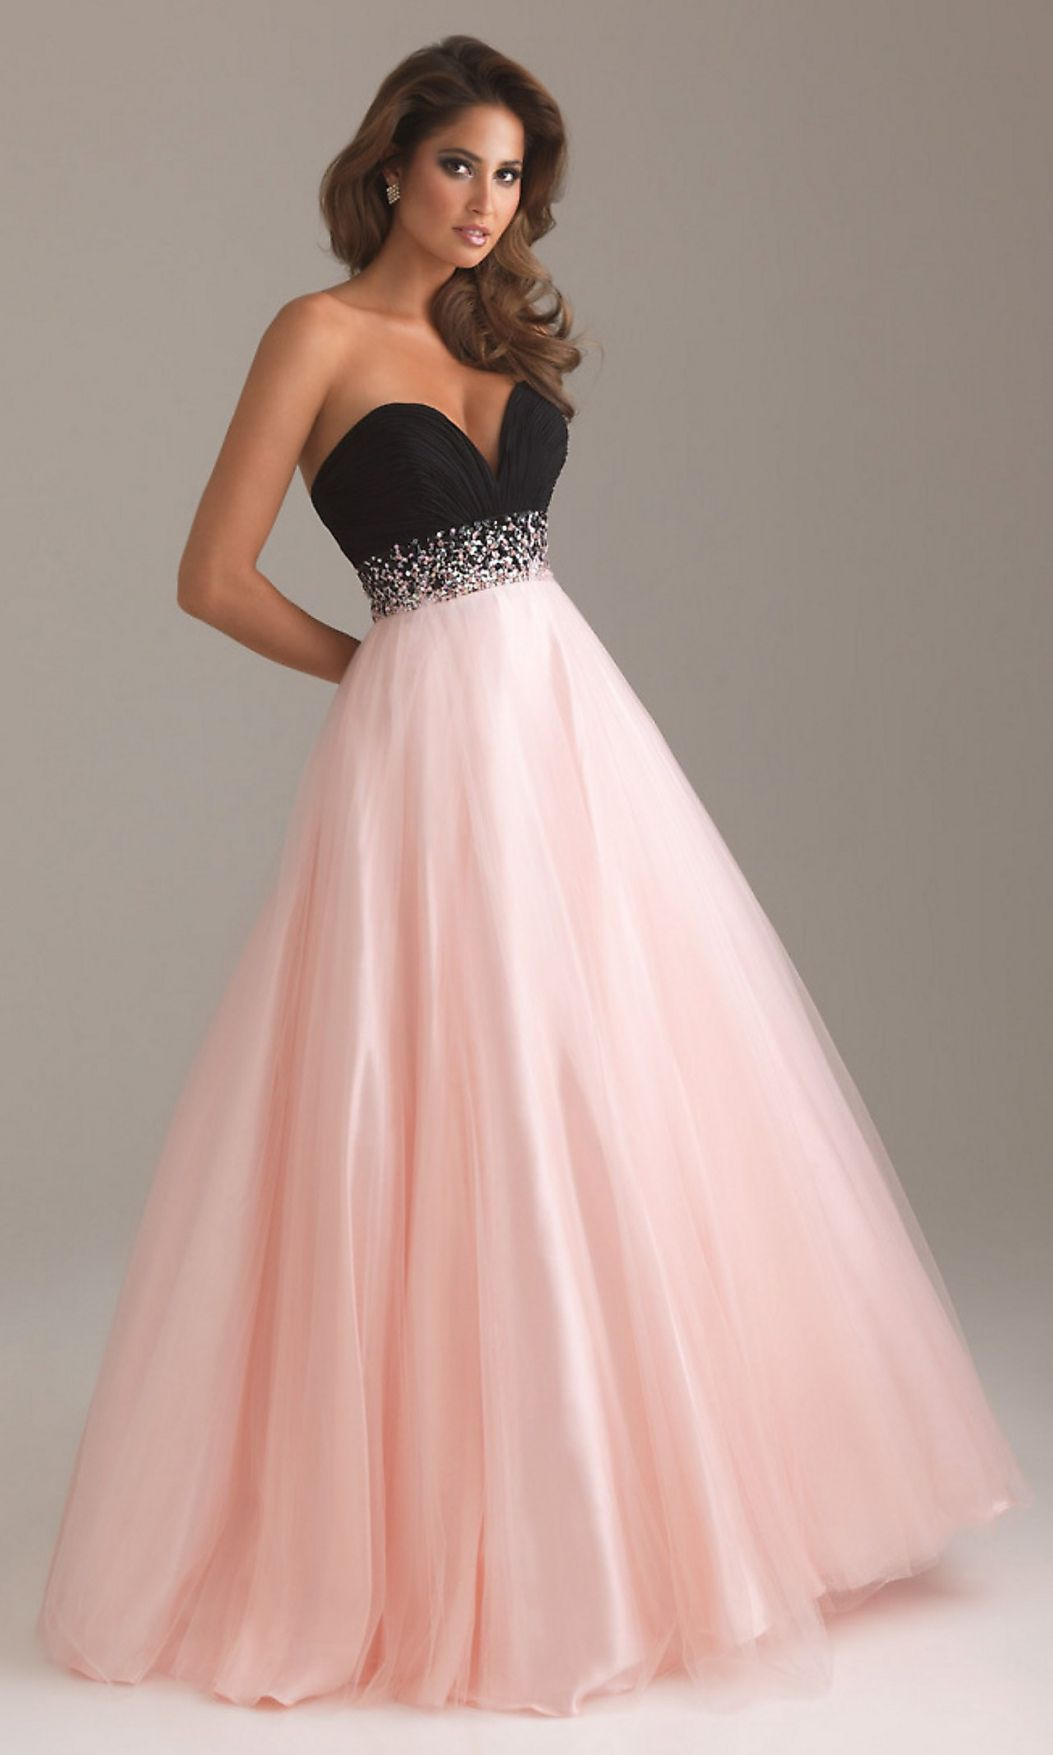 Pin by jooana on wedding ideas for you pinterest dresses prom